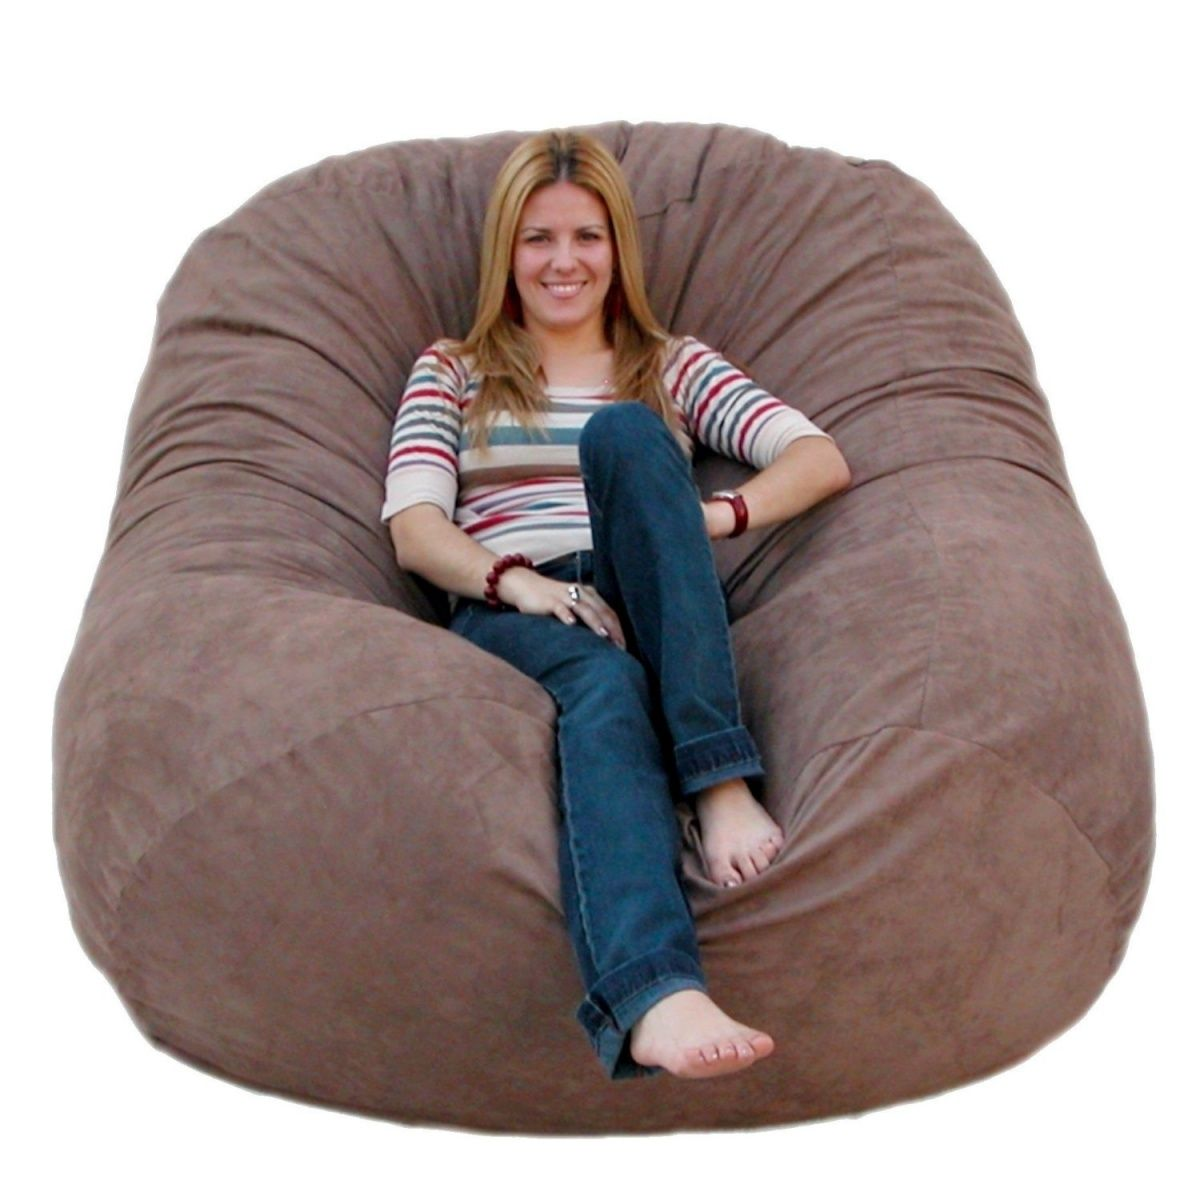 classy bean bag chairs living room chair covers diy you can now get the foam filled